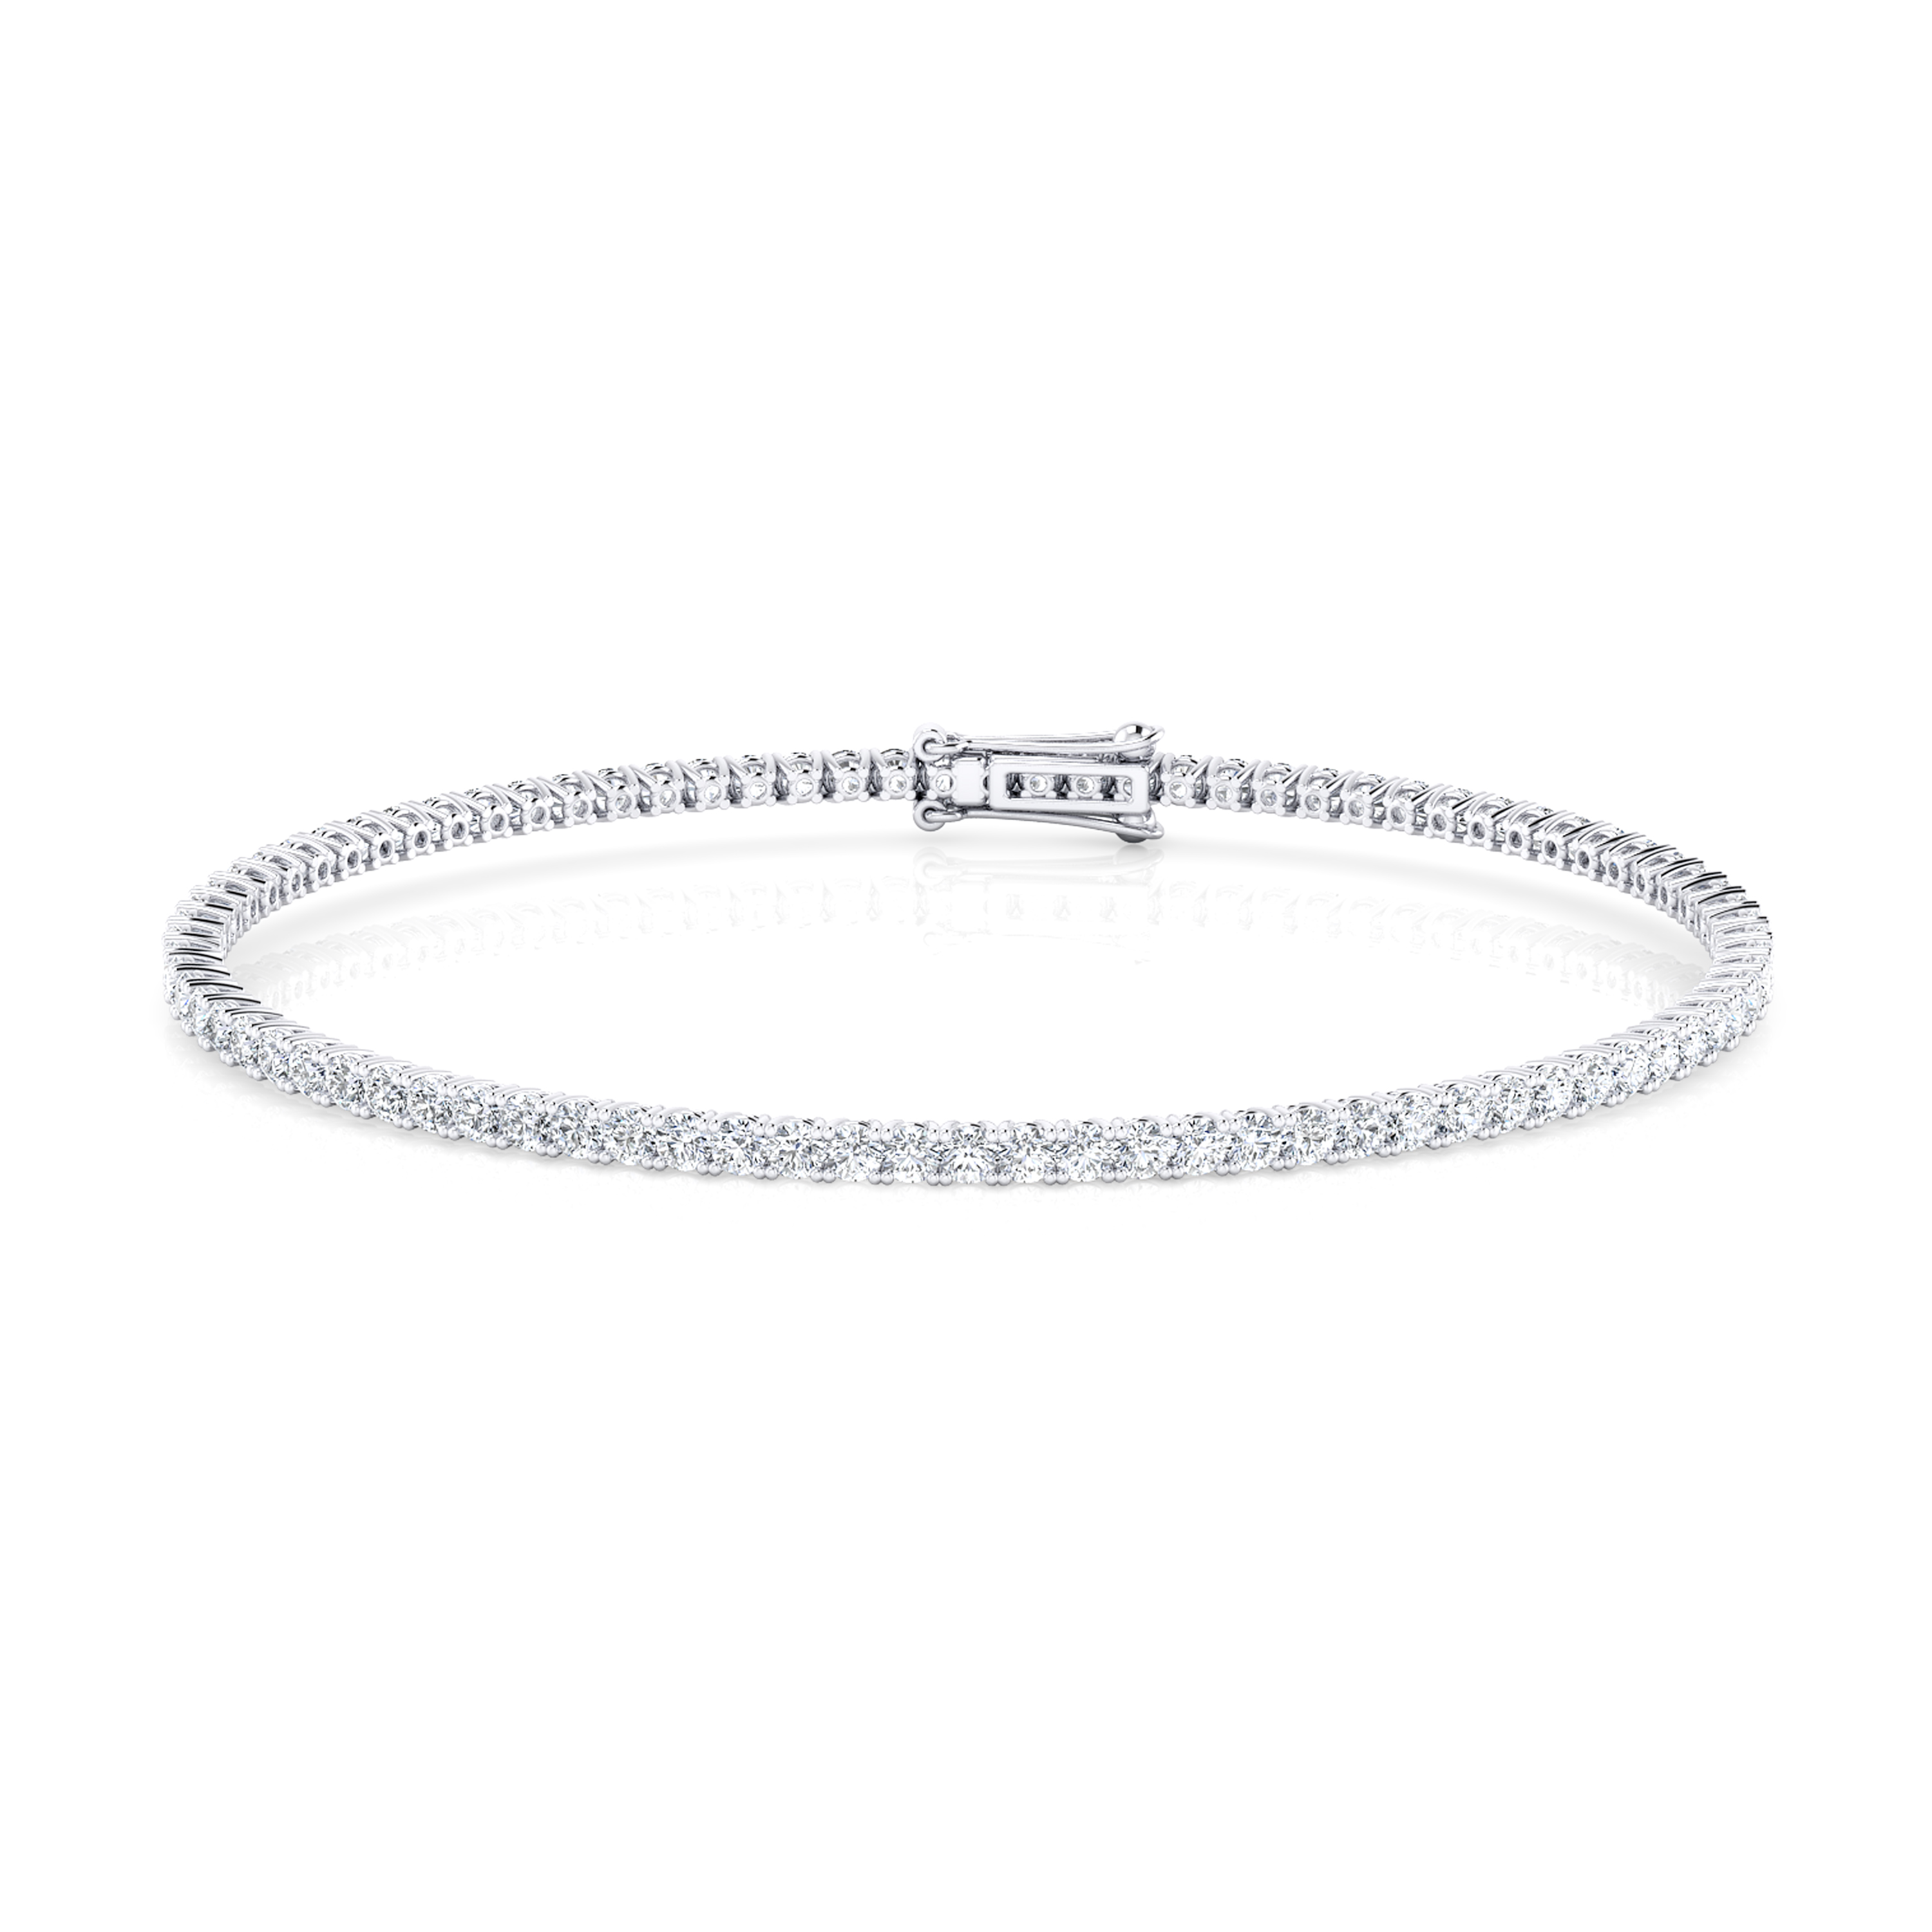 Riviere de diamants d'or blanc de 18kt amb diamants de 0,04qt - grapa rodona